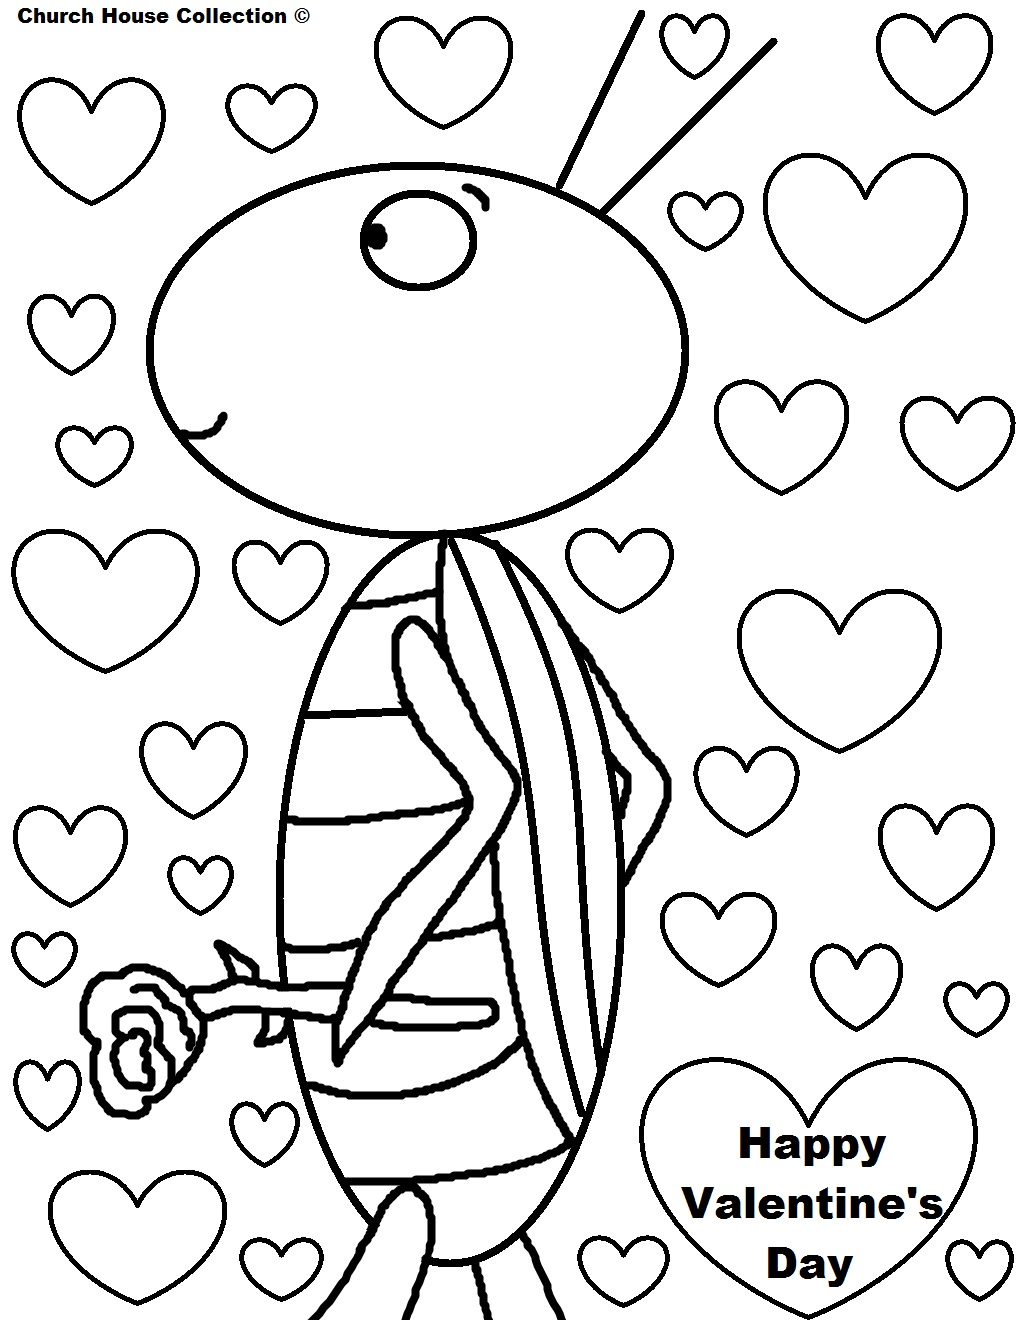 Church house collection blog valentine 39 s day coloring for Valentines coloring page